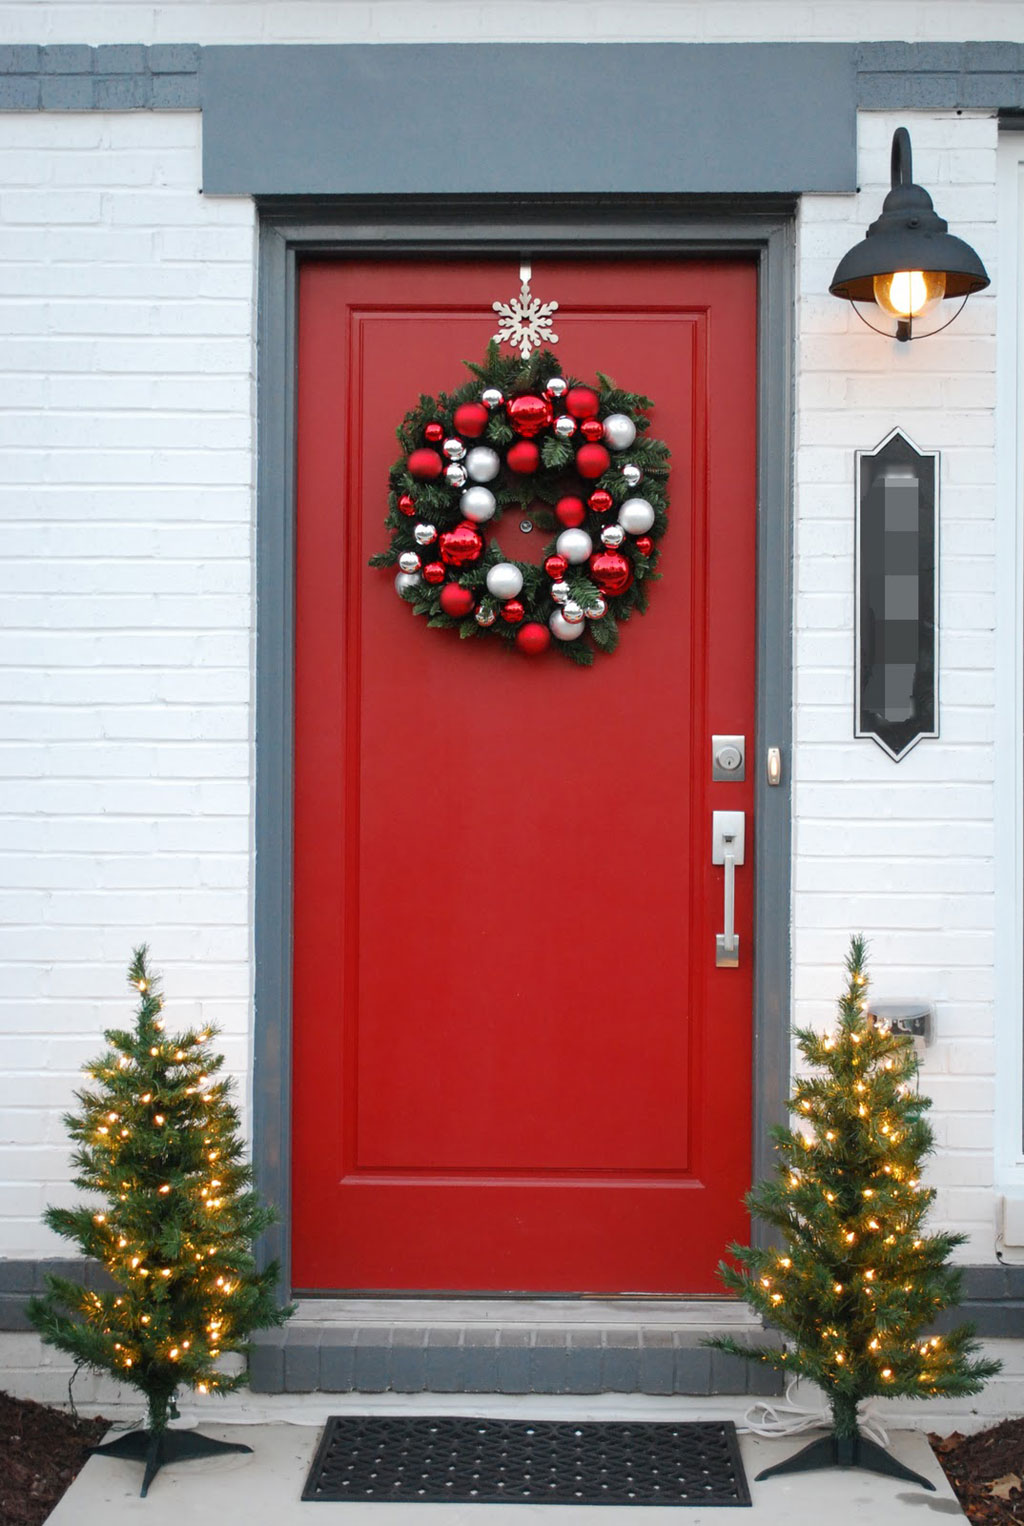 37 hung from a snowflake - Christmas Front Door Decor